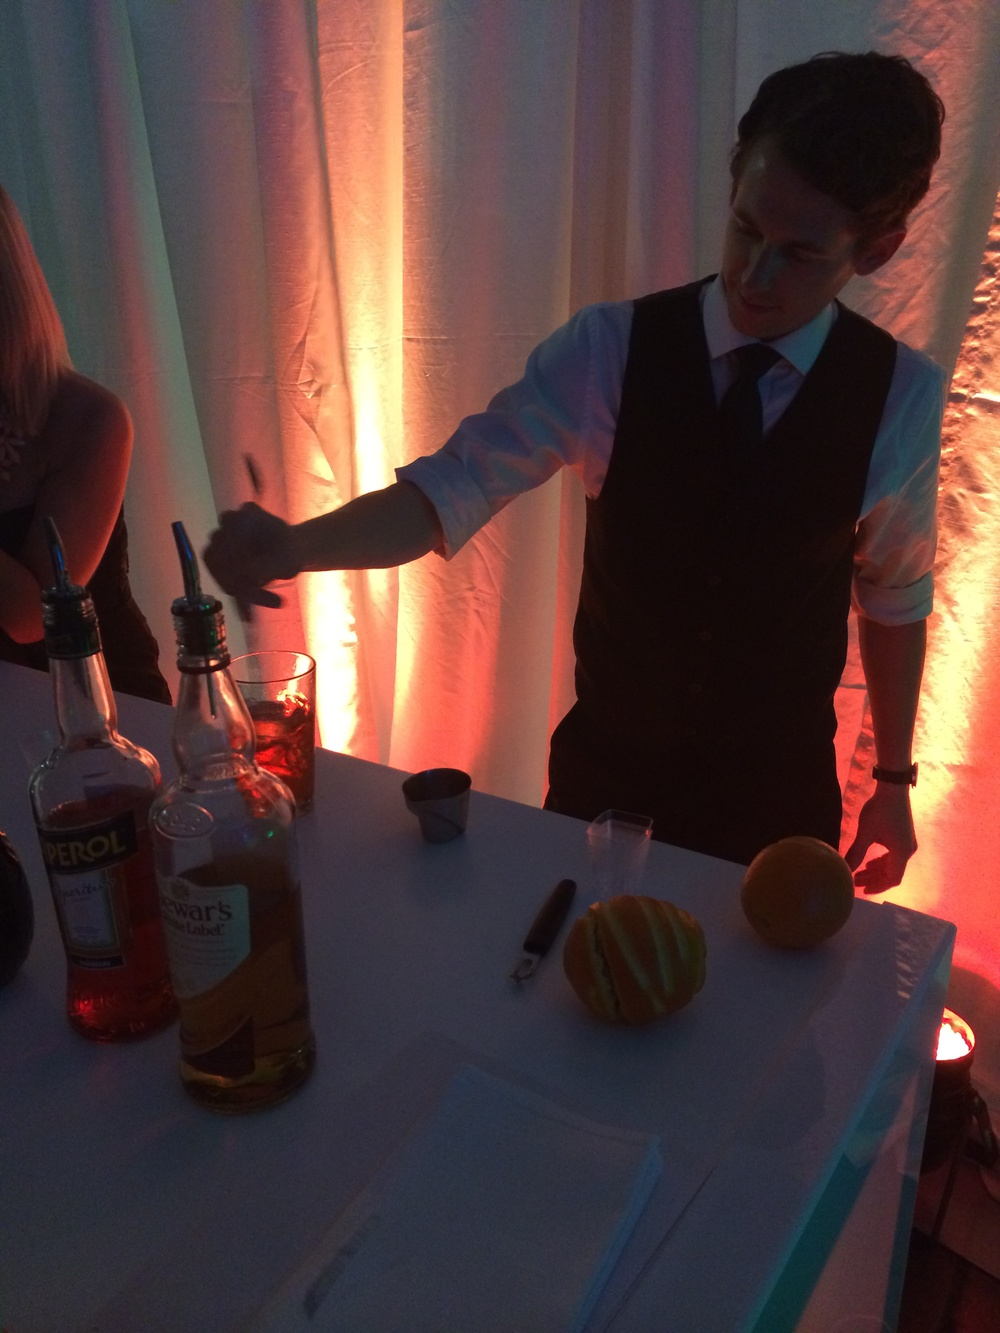 Just one of the genius bartenders serving up wine and chocolate pairings throughout the room.